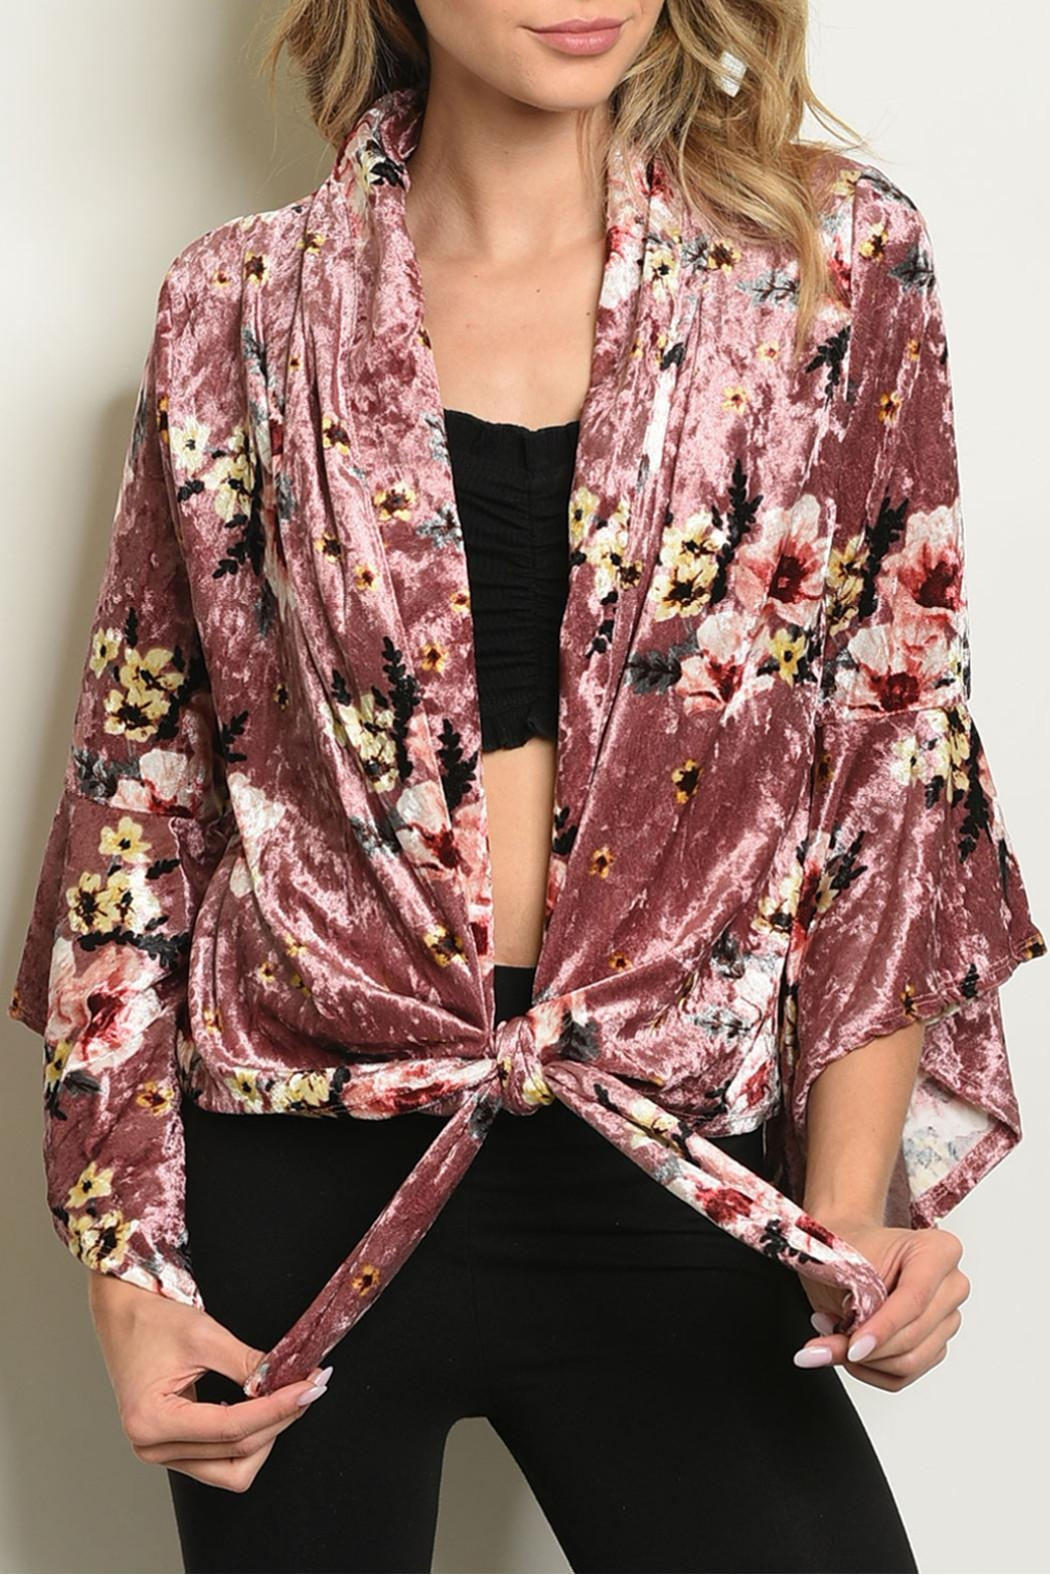 Miley and Molly Velvet Floral Cardigan - Main Image